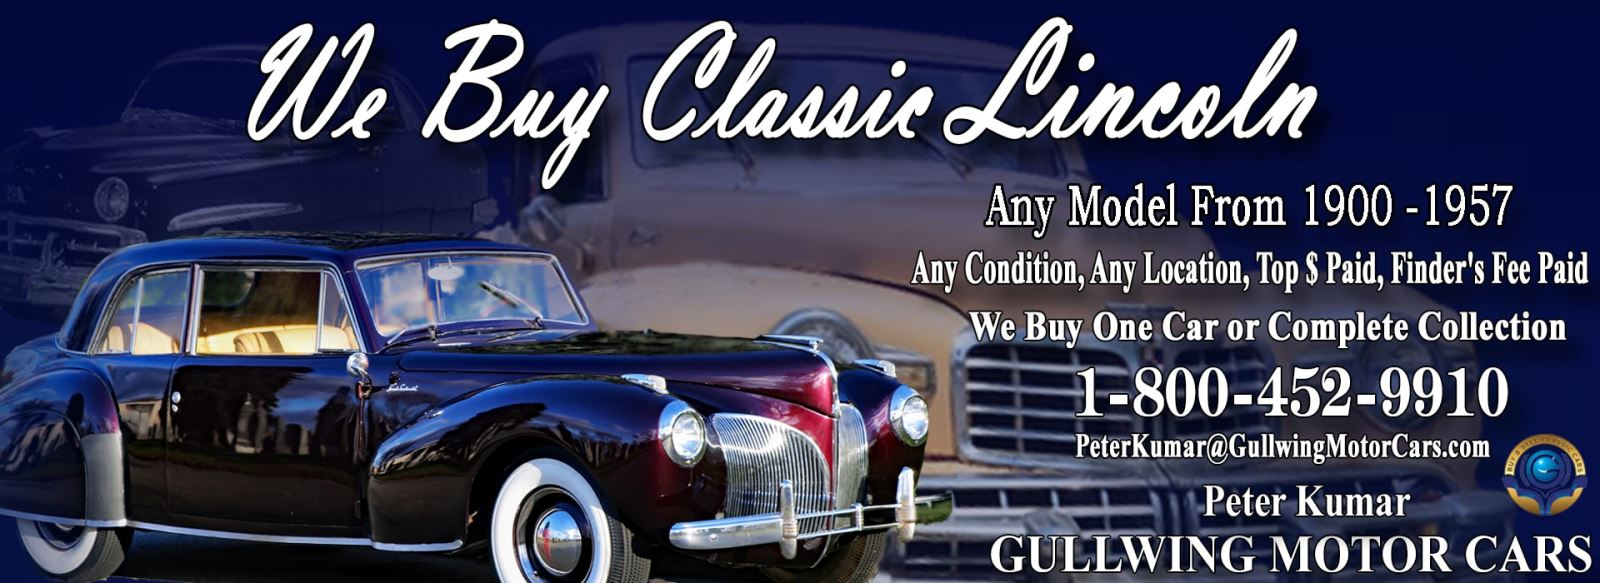 Classic Lincoln for sale, we buy vintage Lincoln . Call Peter Kumar. Gullwing Motor